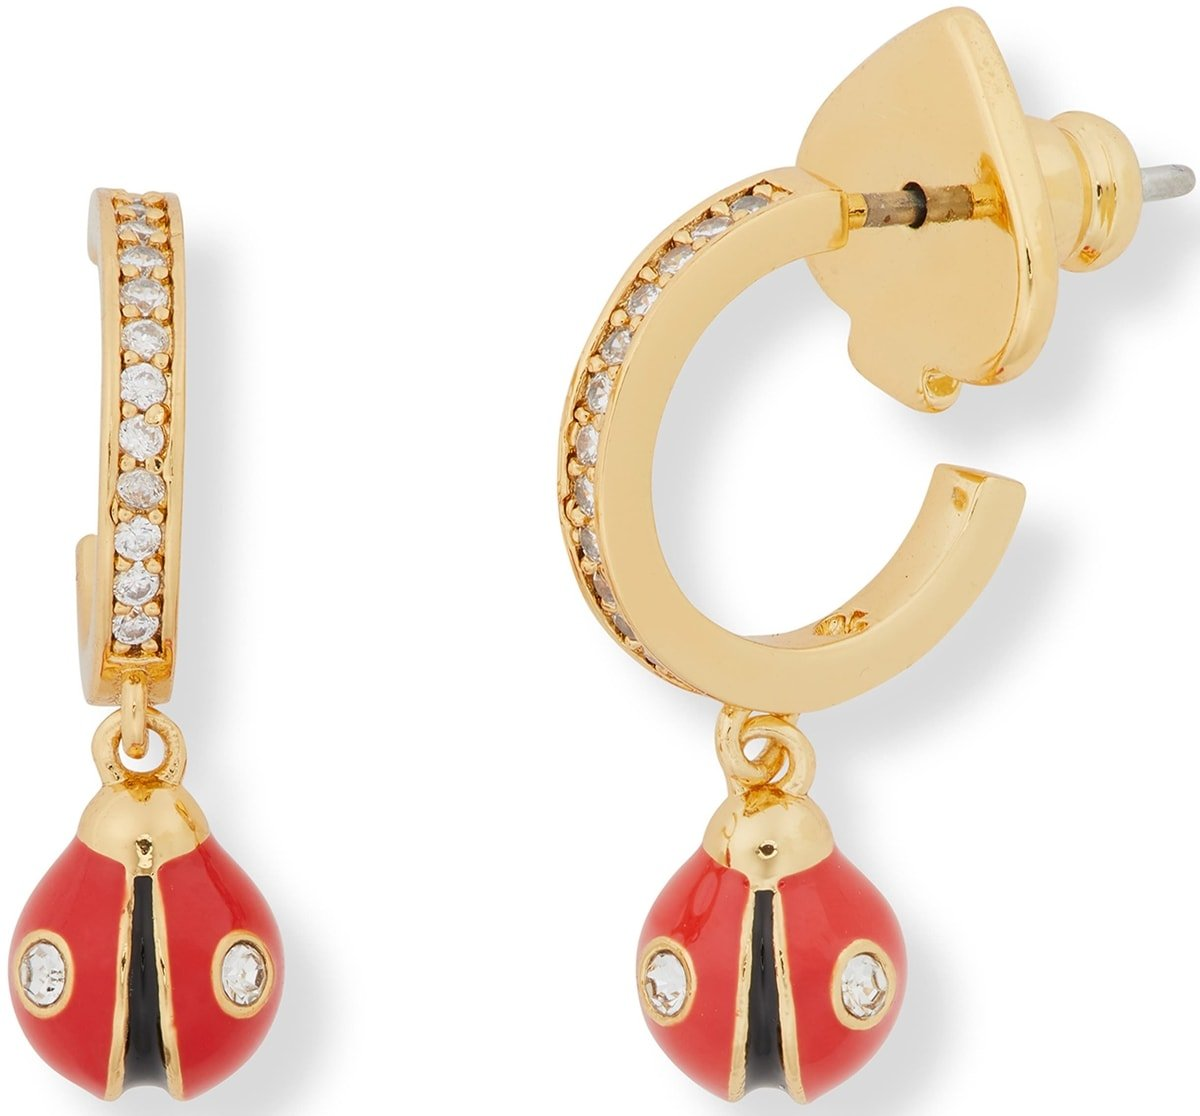 Dainty ladybugs hang from cubic zirconia–lined huggie hoops in these red Kate Spade earrings that make casual ensembles playful